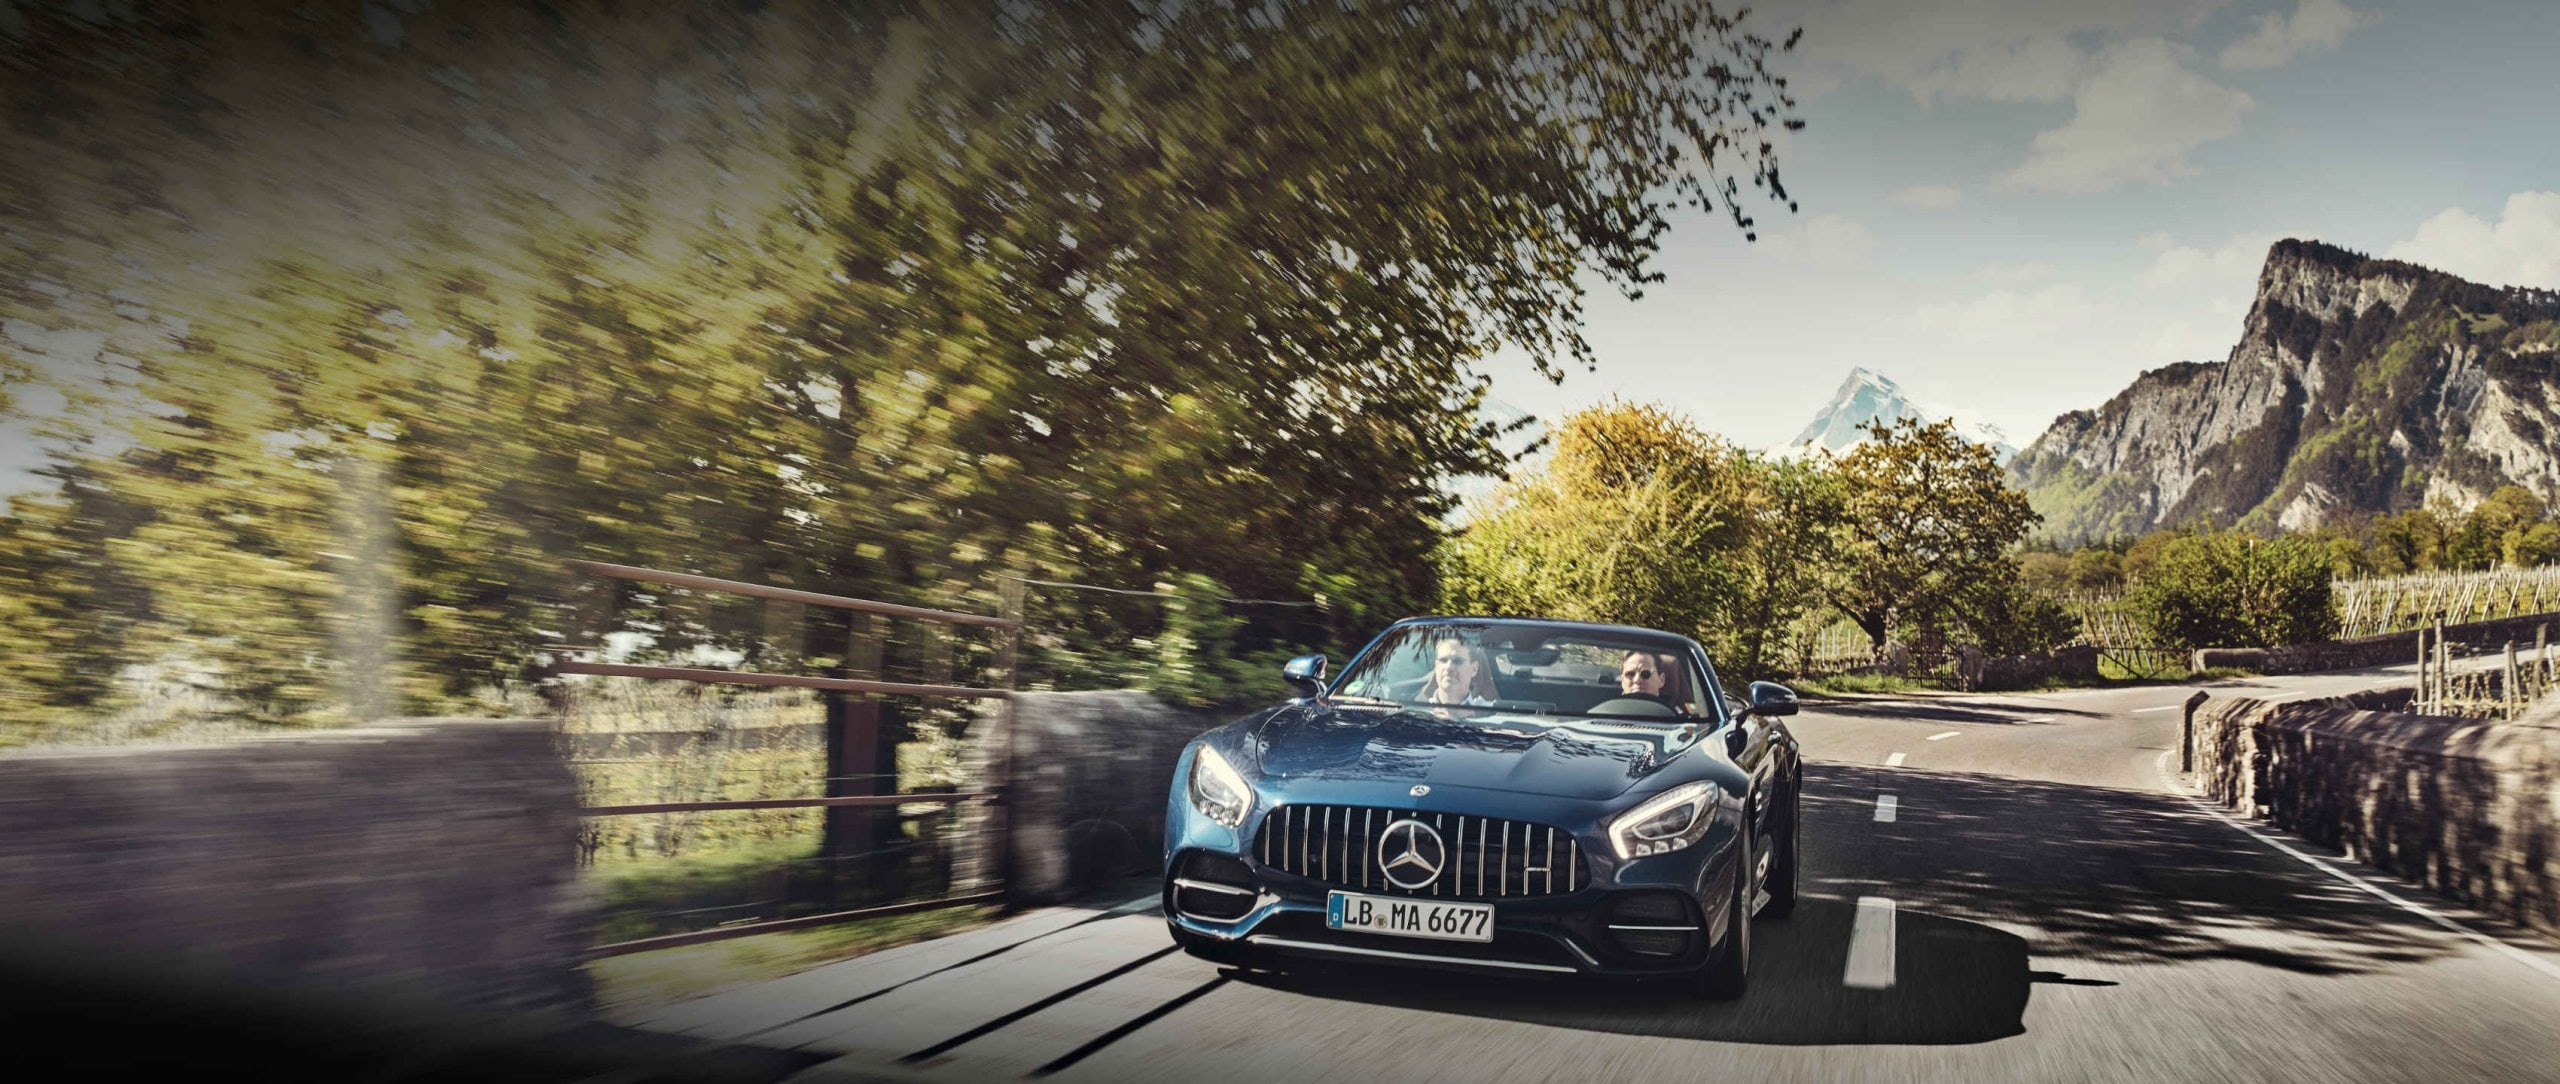 Mercedes-Benz: Mercedes-AMG Magazine – Two guys, one roadster, 1,000 kilometres. Marc-Remo and Gian on a road trip with the Mercedes-AMG GT C Roadster (R 190) in brilliant blue metallic.